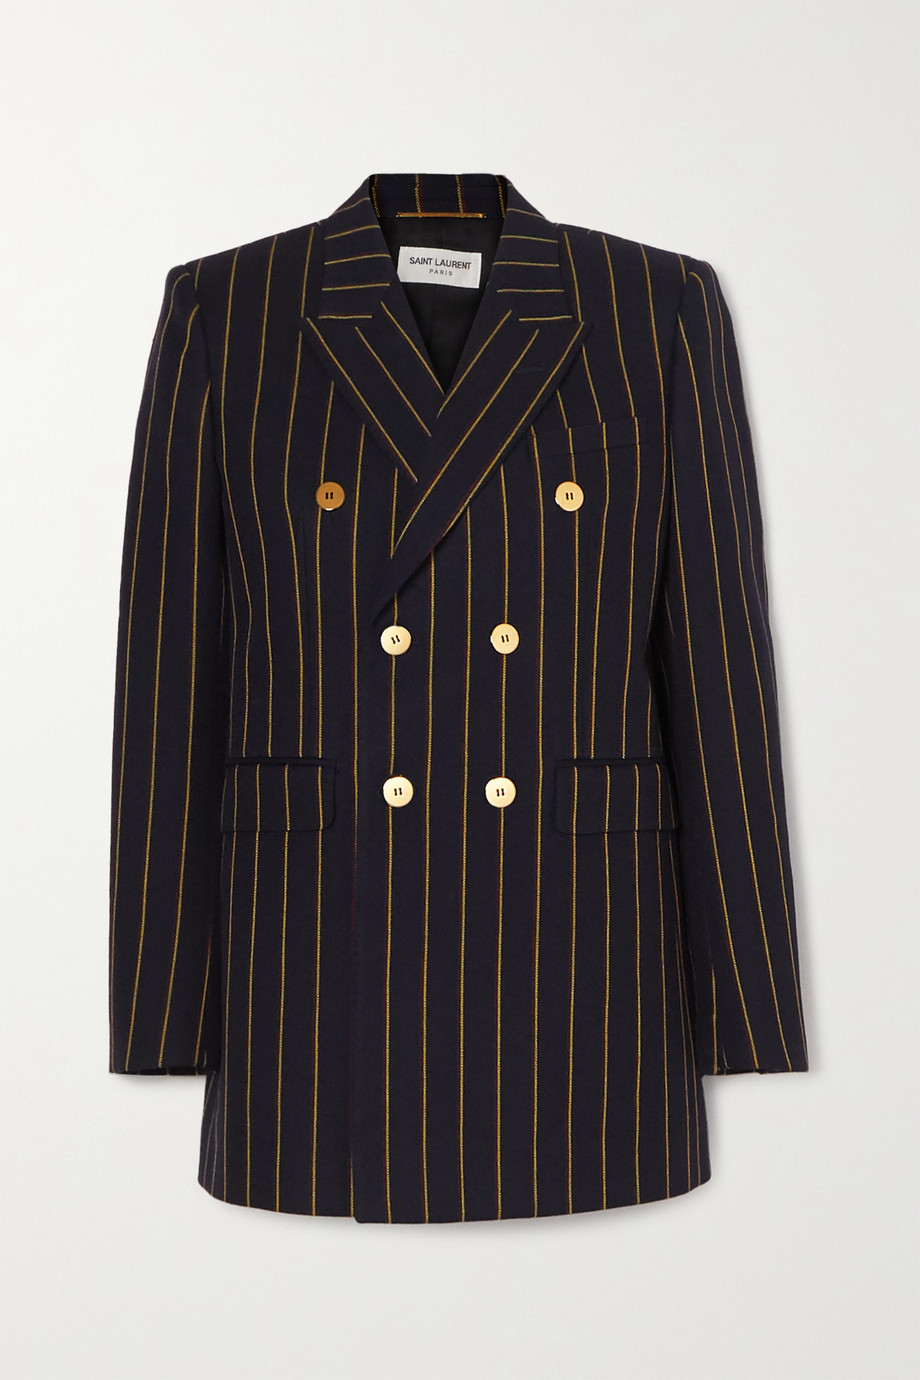 SAINT LAURENT Double-breasted pinstriped wool-twill blazer